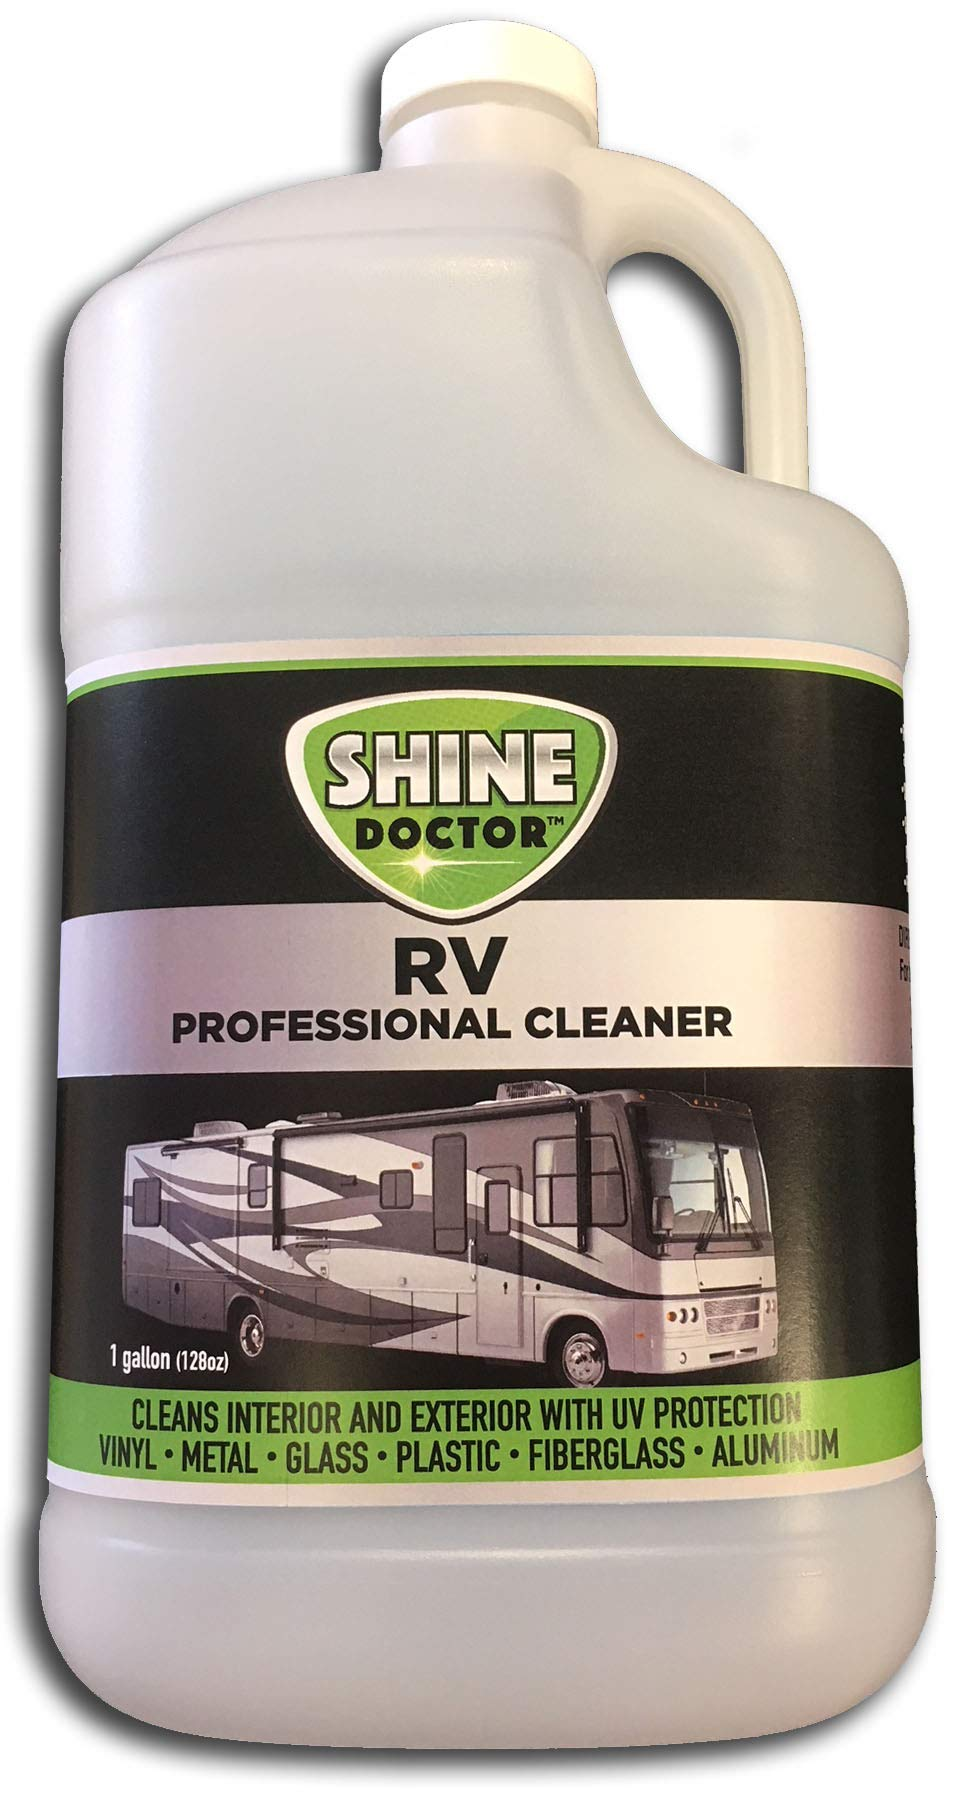 Shine Doctor RV Cleaner 128 oz.(Gallon Refill) with UV Protection! Cleans Chrome, Wheels and Glass and Removes Grime, Bugs and Grease.